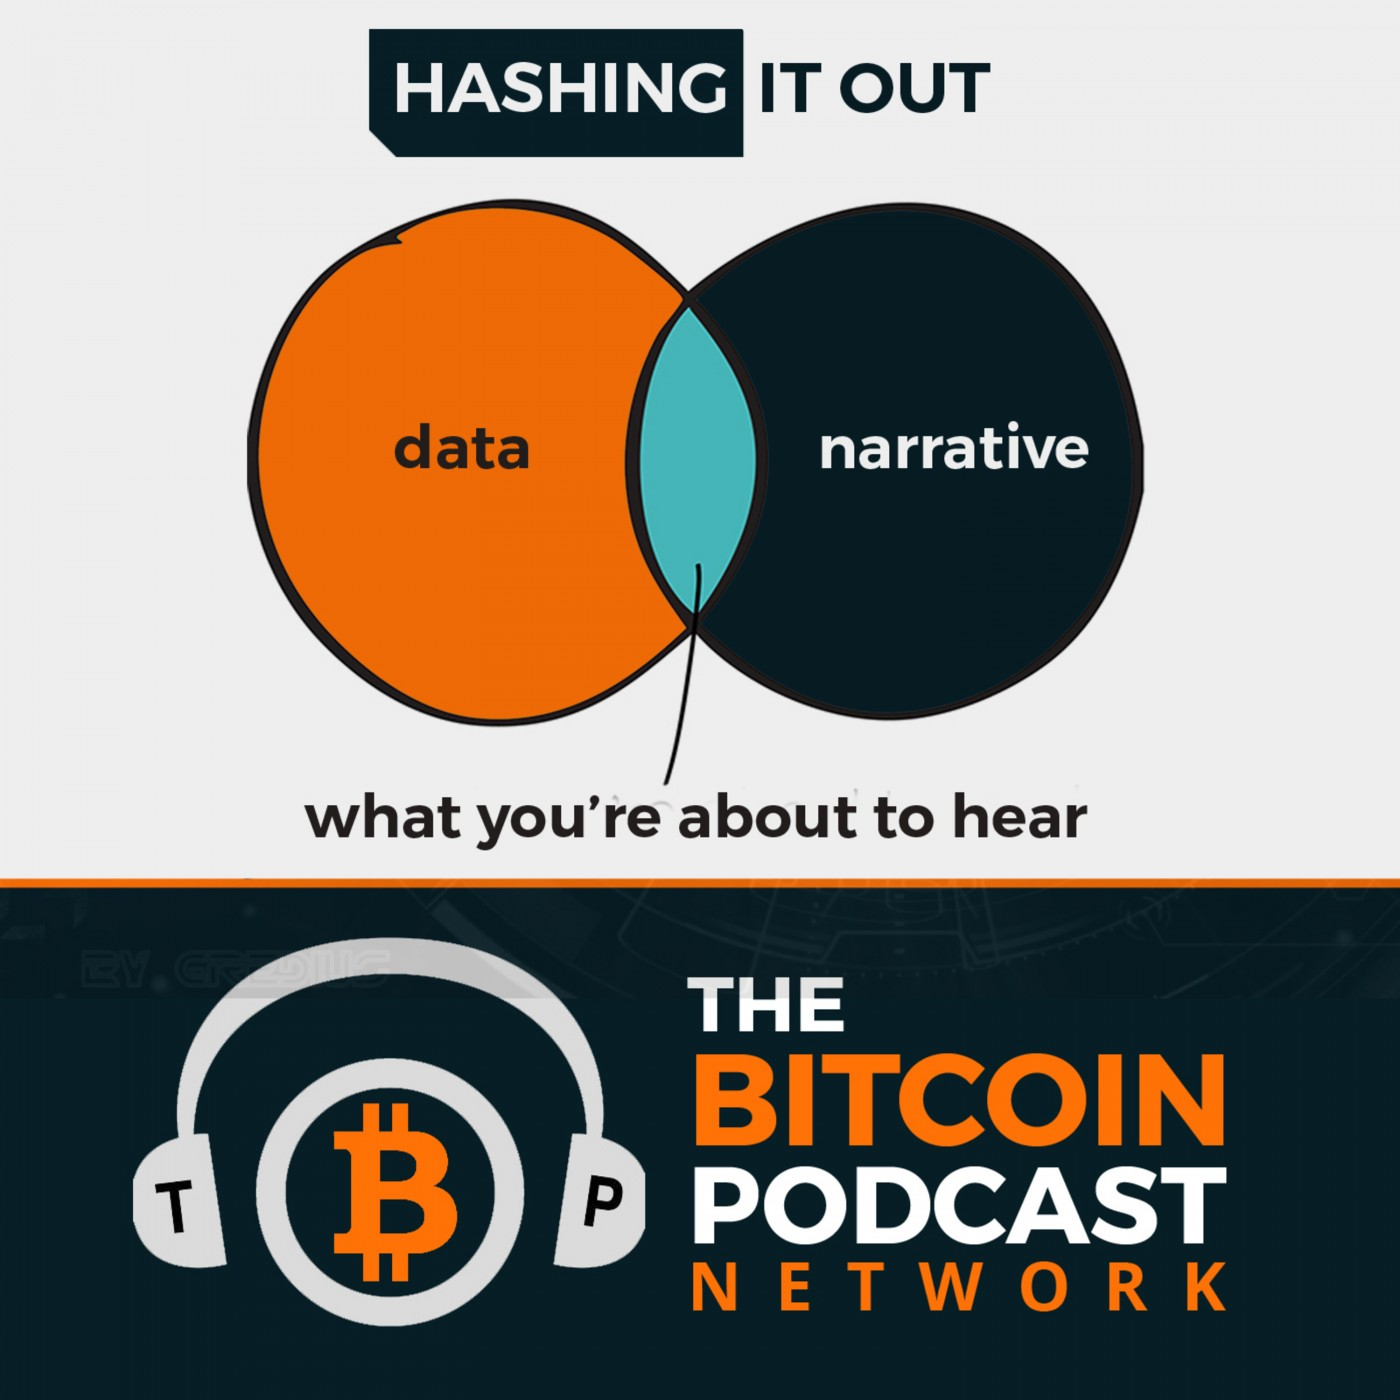 Hashing It Out #34: Storj - Shawn Wilkinson & JT Olio